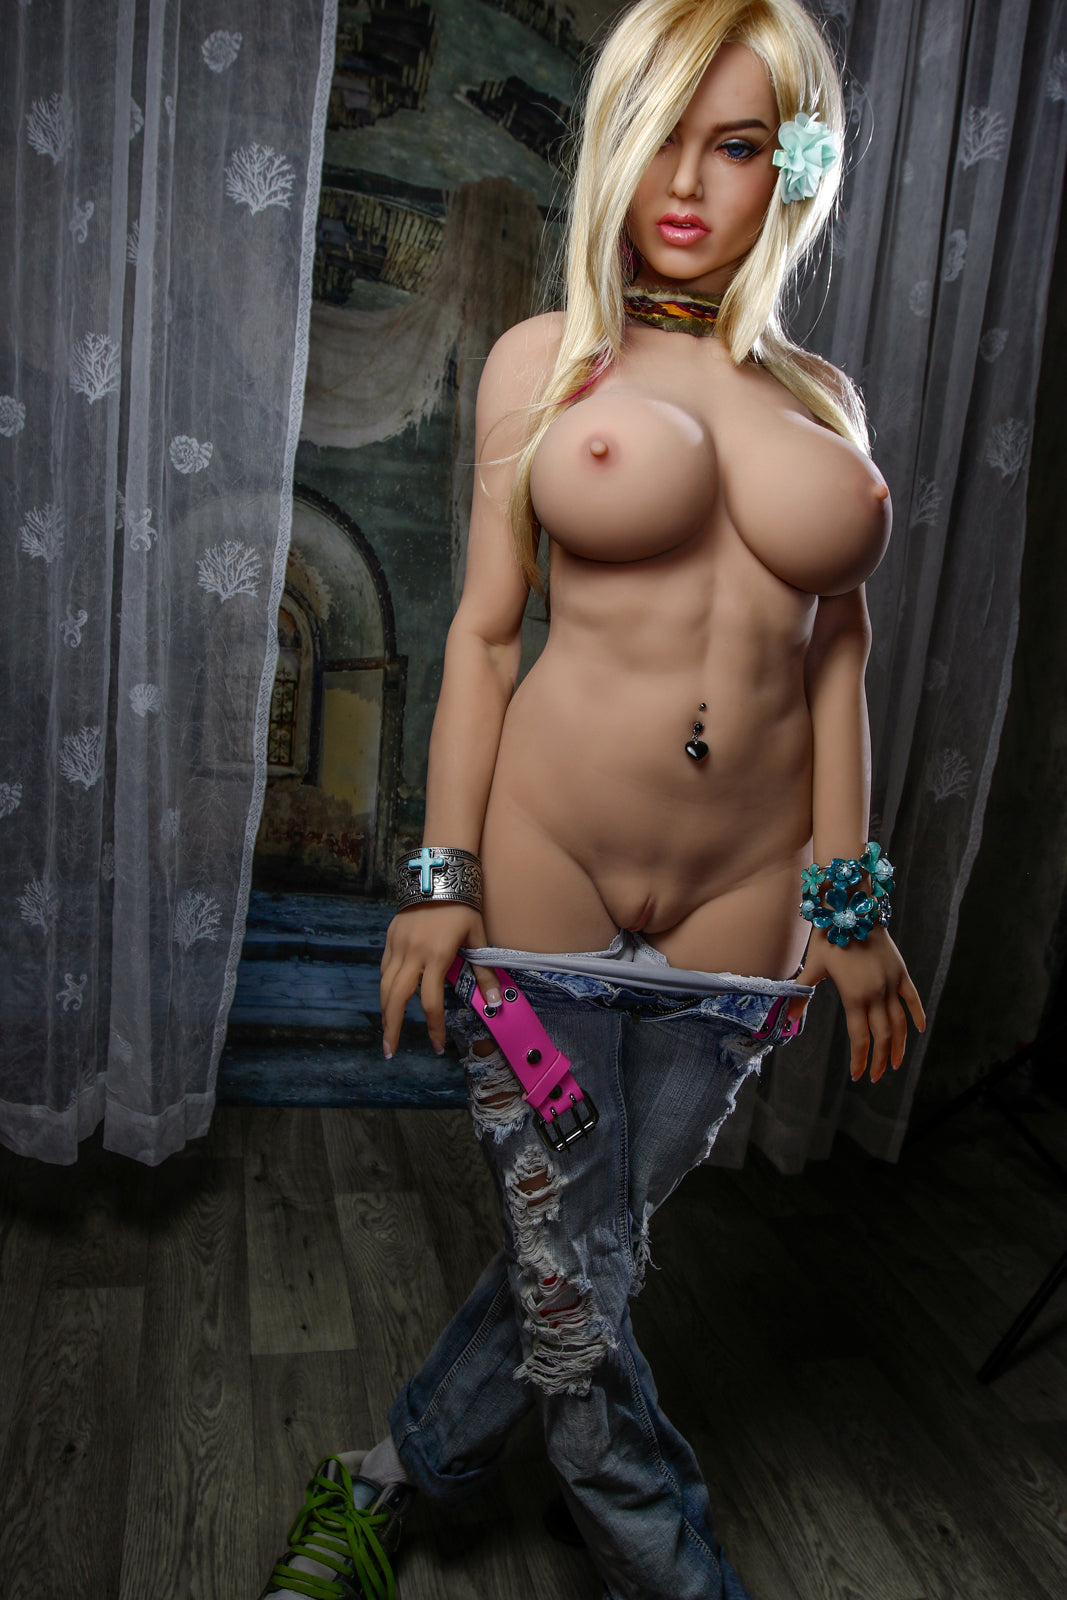 shari 161cm blonde big boobs athletic tpe sex doll(7)